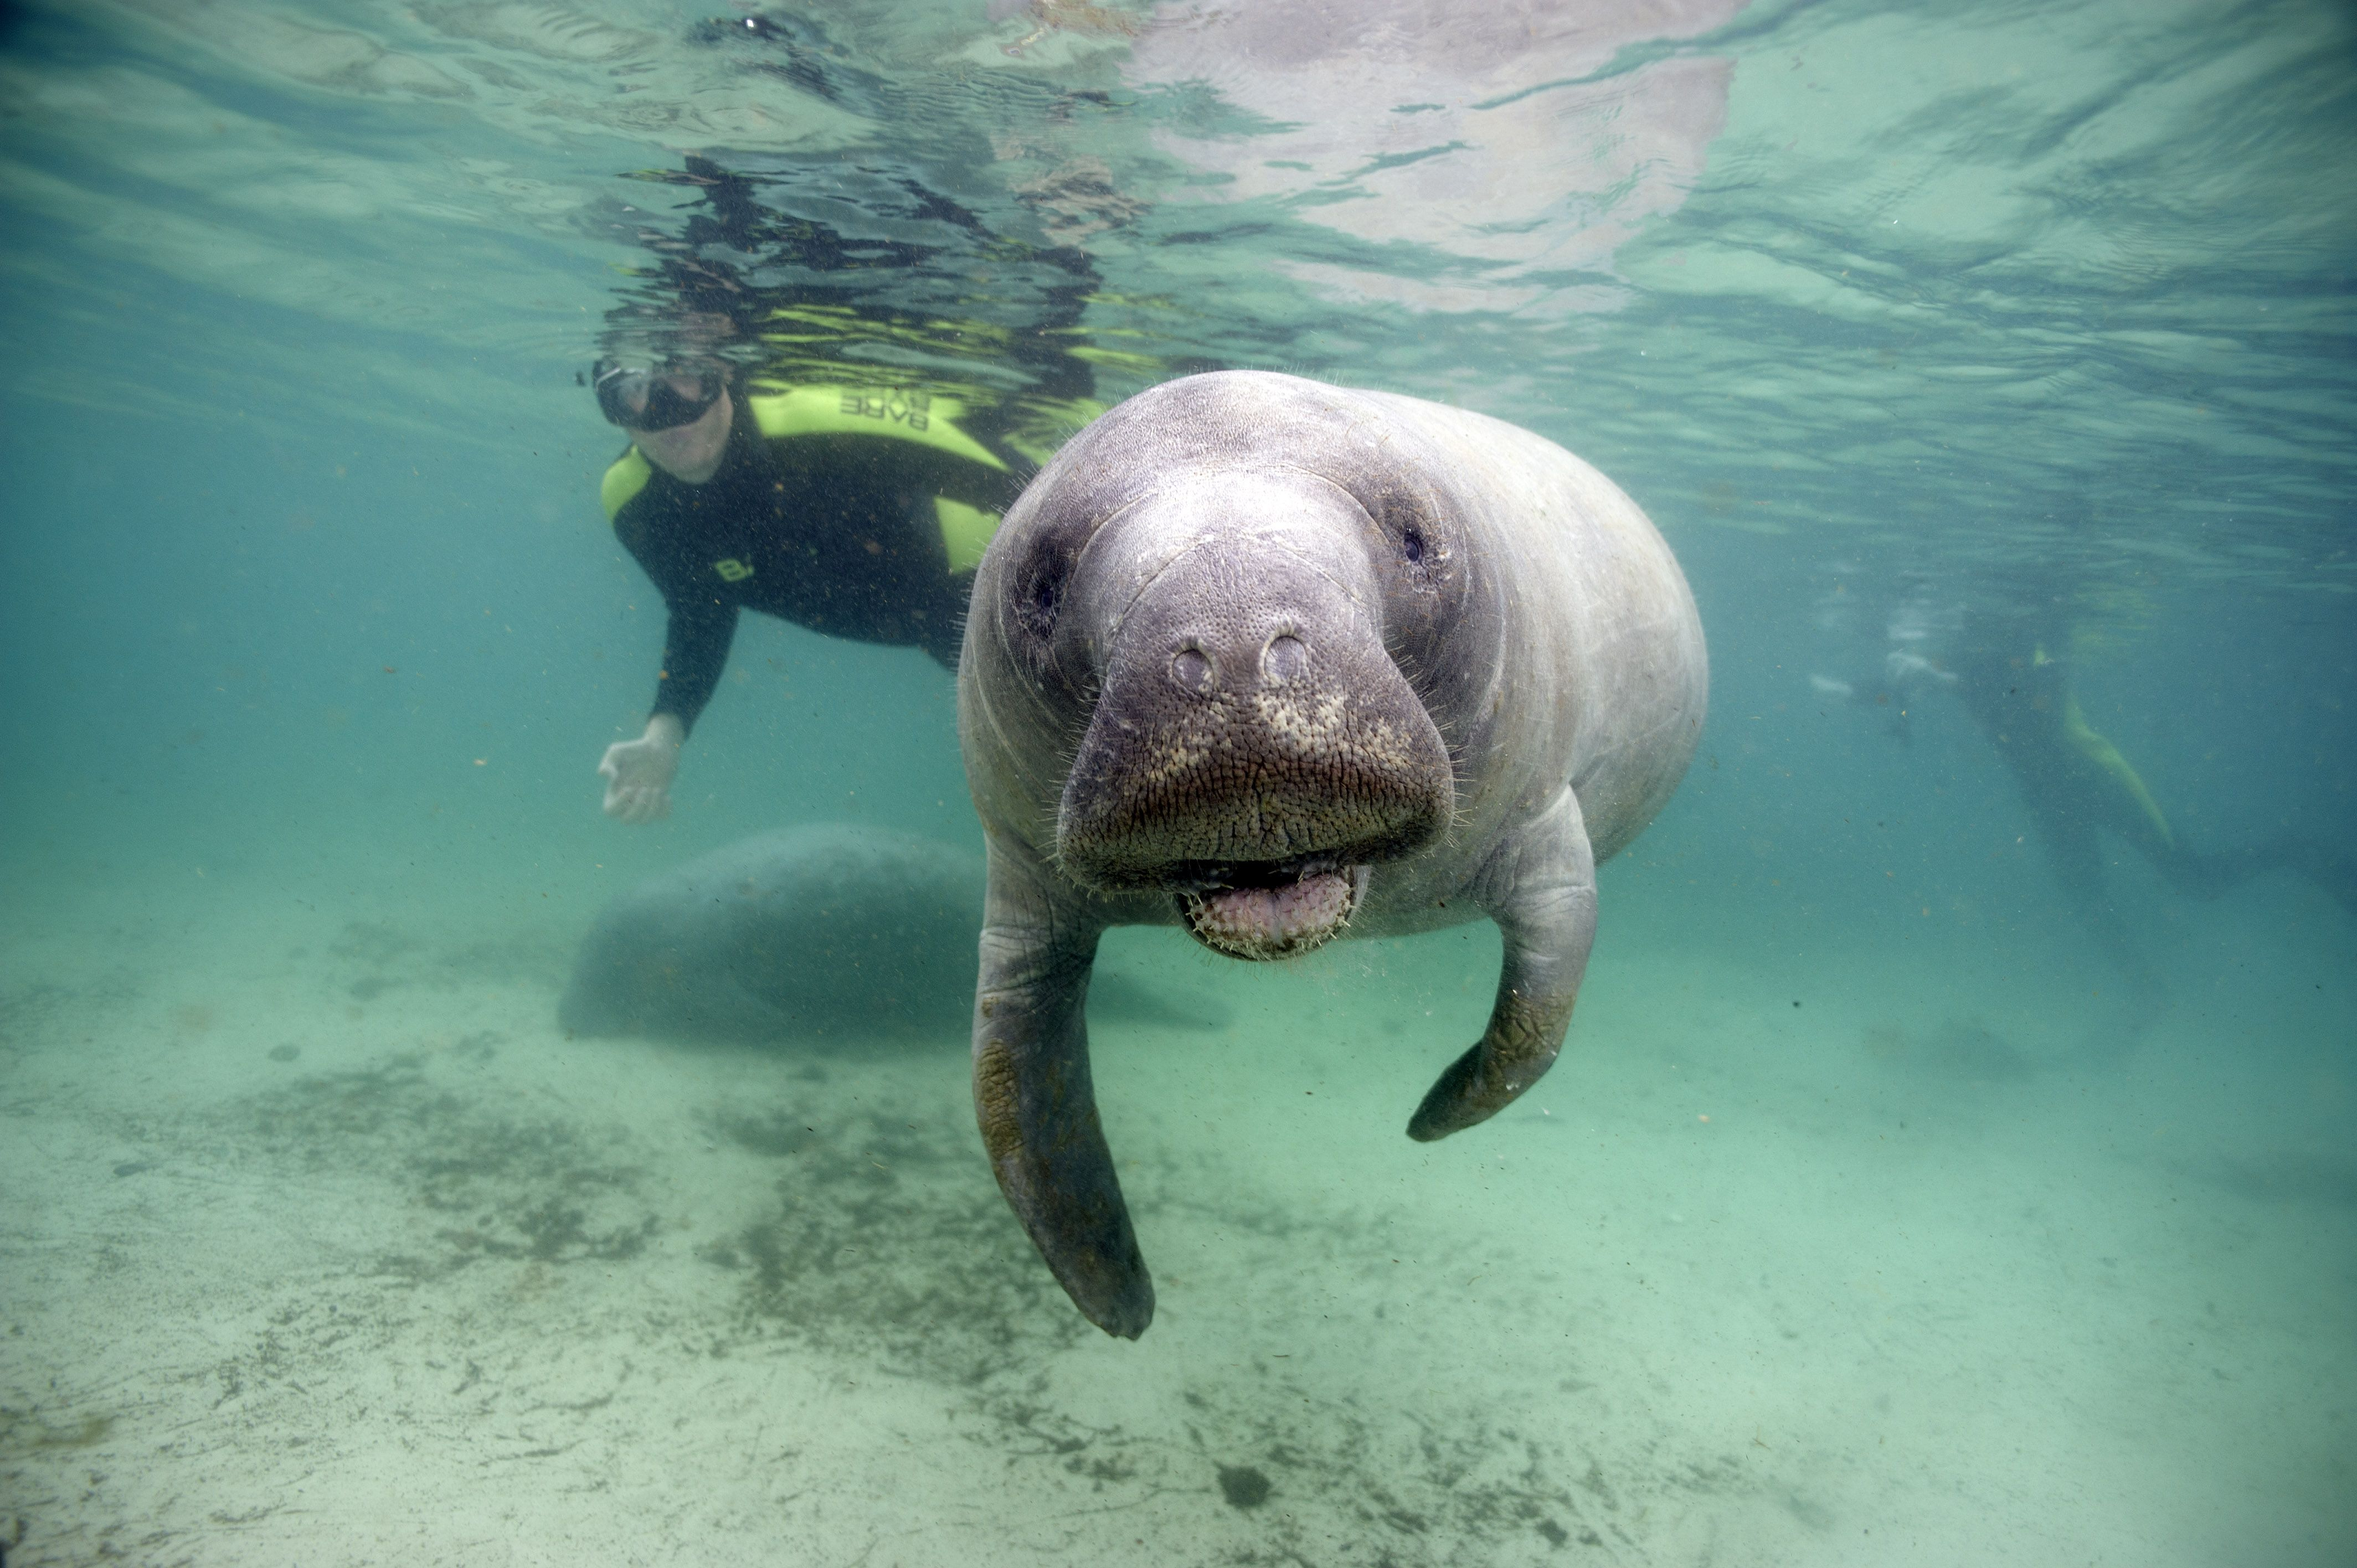 Cooler weather is coming & so are the manatees. Best